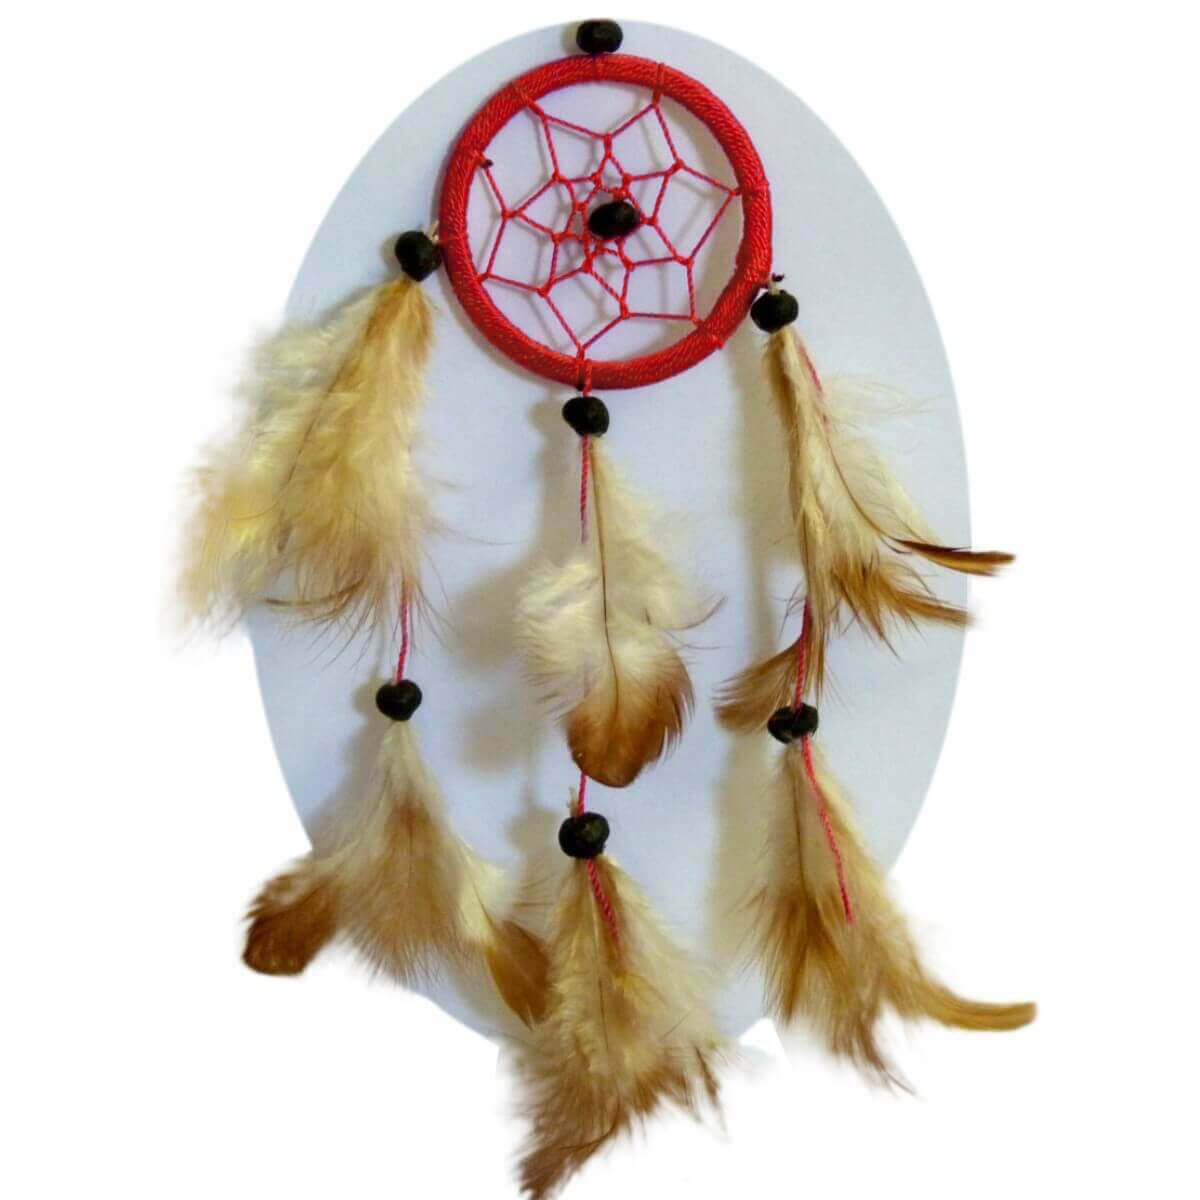 traumf nger dreamcatcher federn deko geschenk windspiel 6 cm. Black Bedroom Furniture Sets. Home Design Ideas